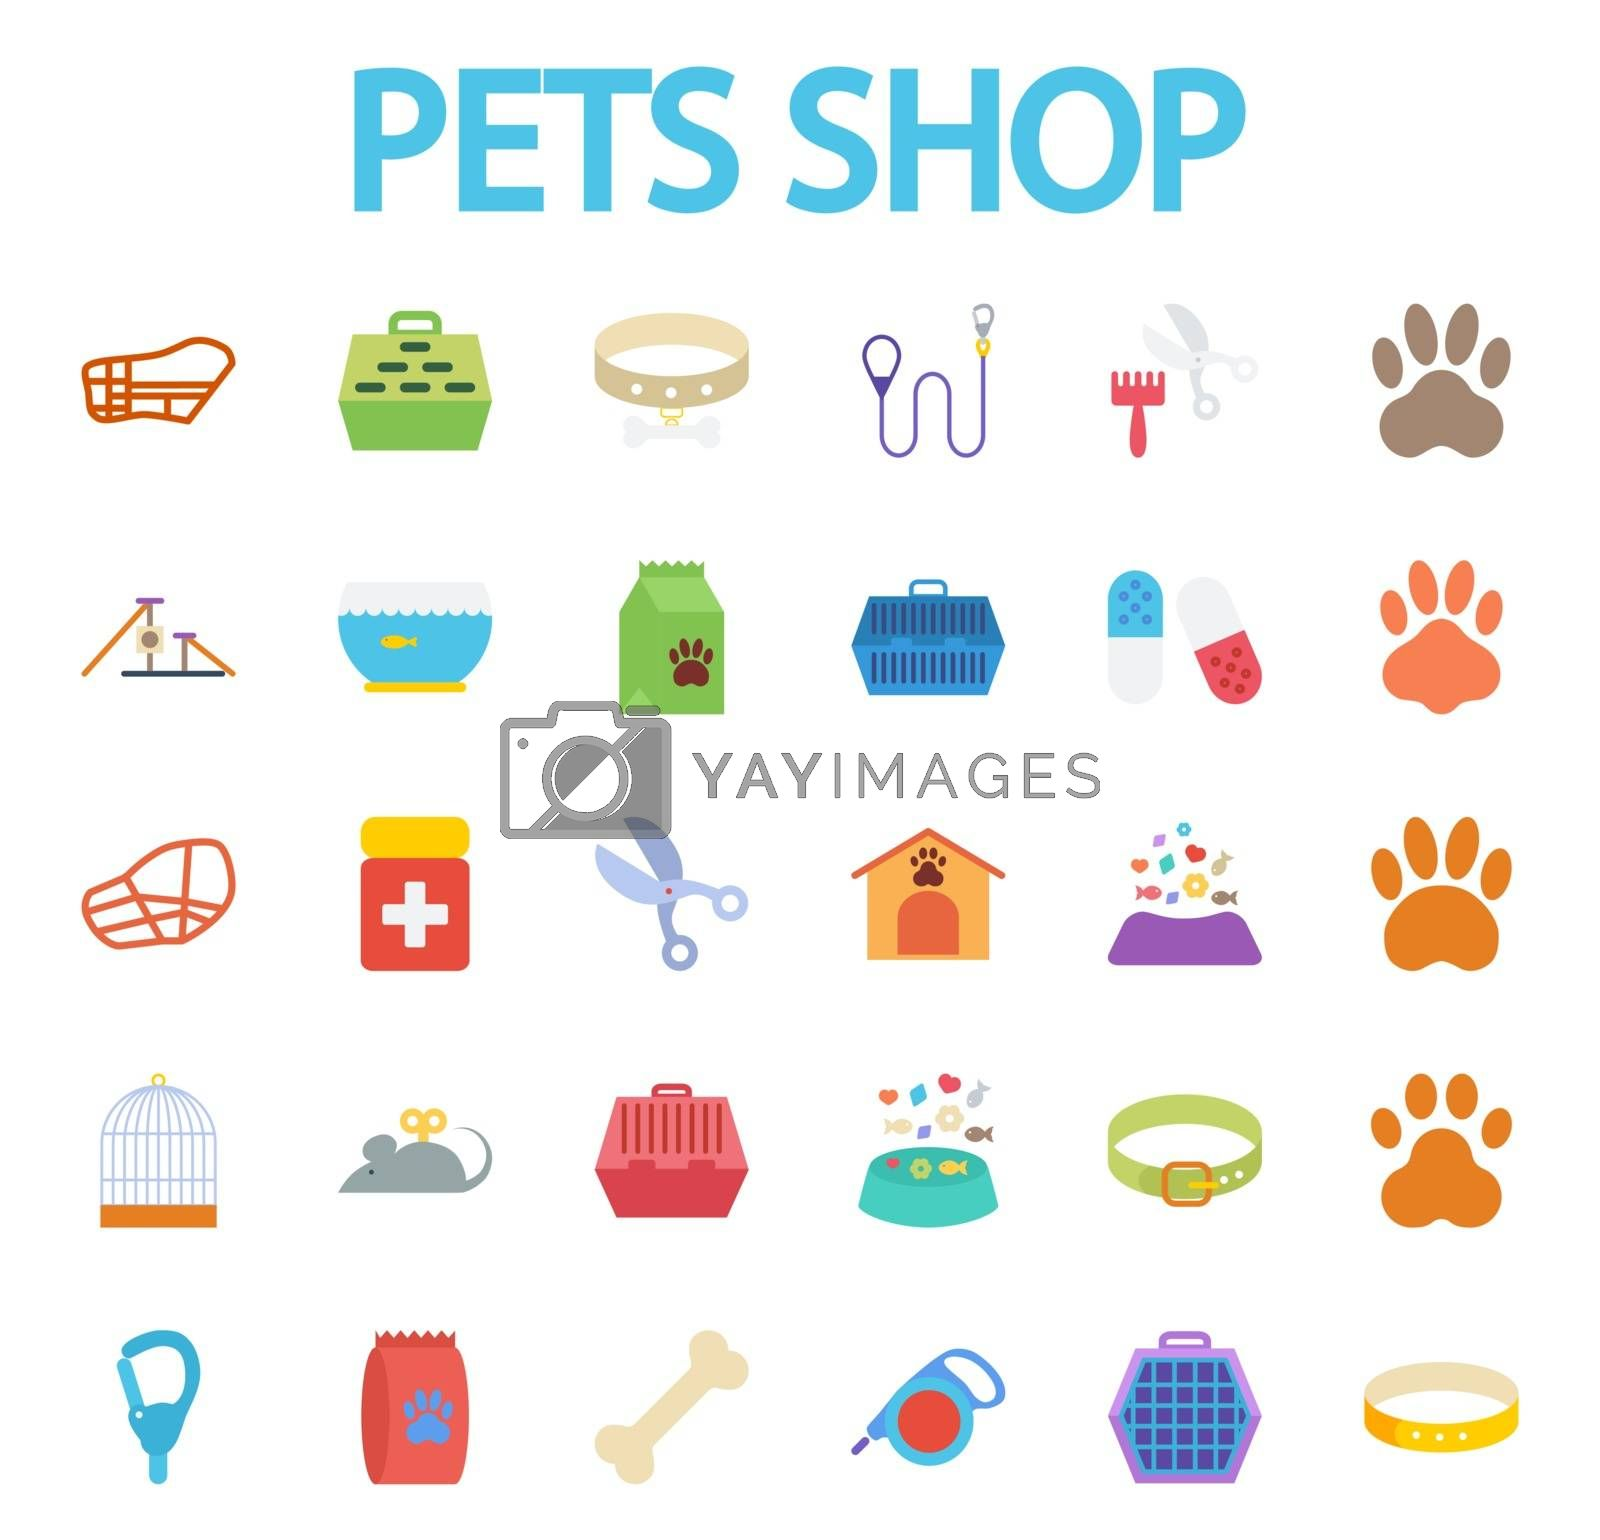 Pets shop icons set. Flat vector related icon set for web and mobile applications. It can be used as - logo, pictogram, icon, infographic element. Vector Illustration.i